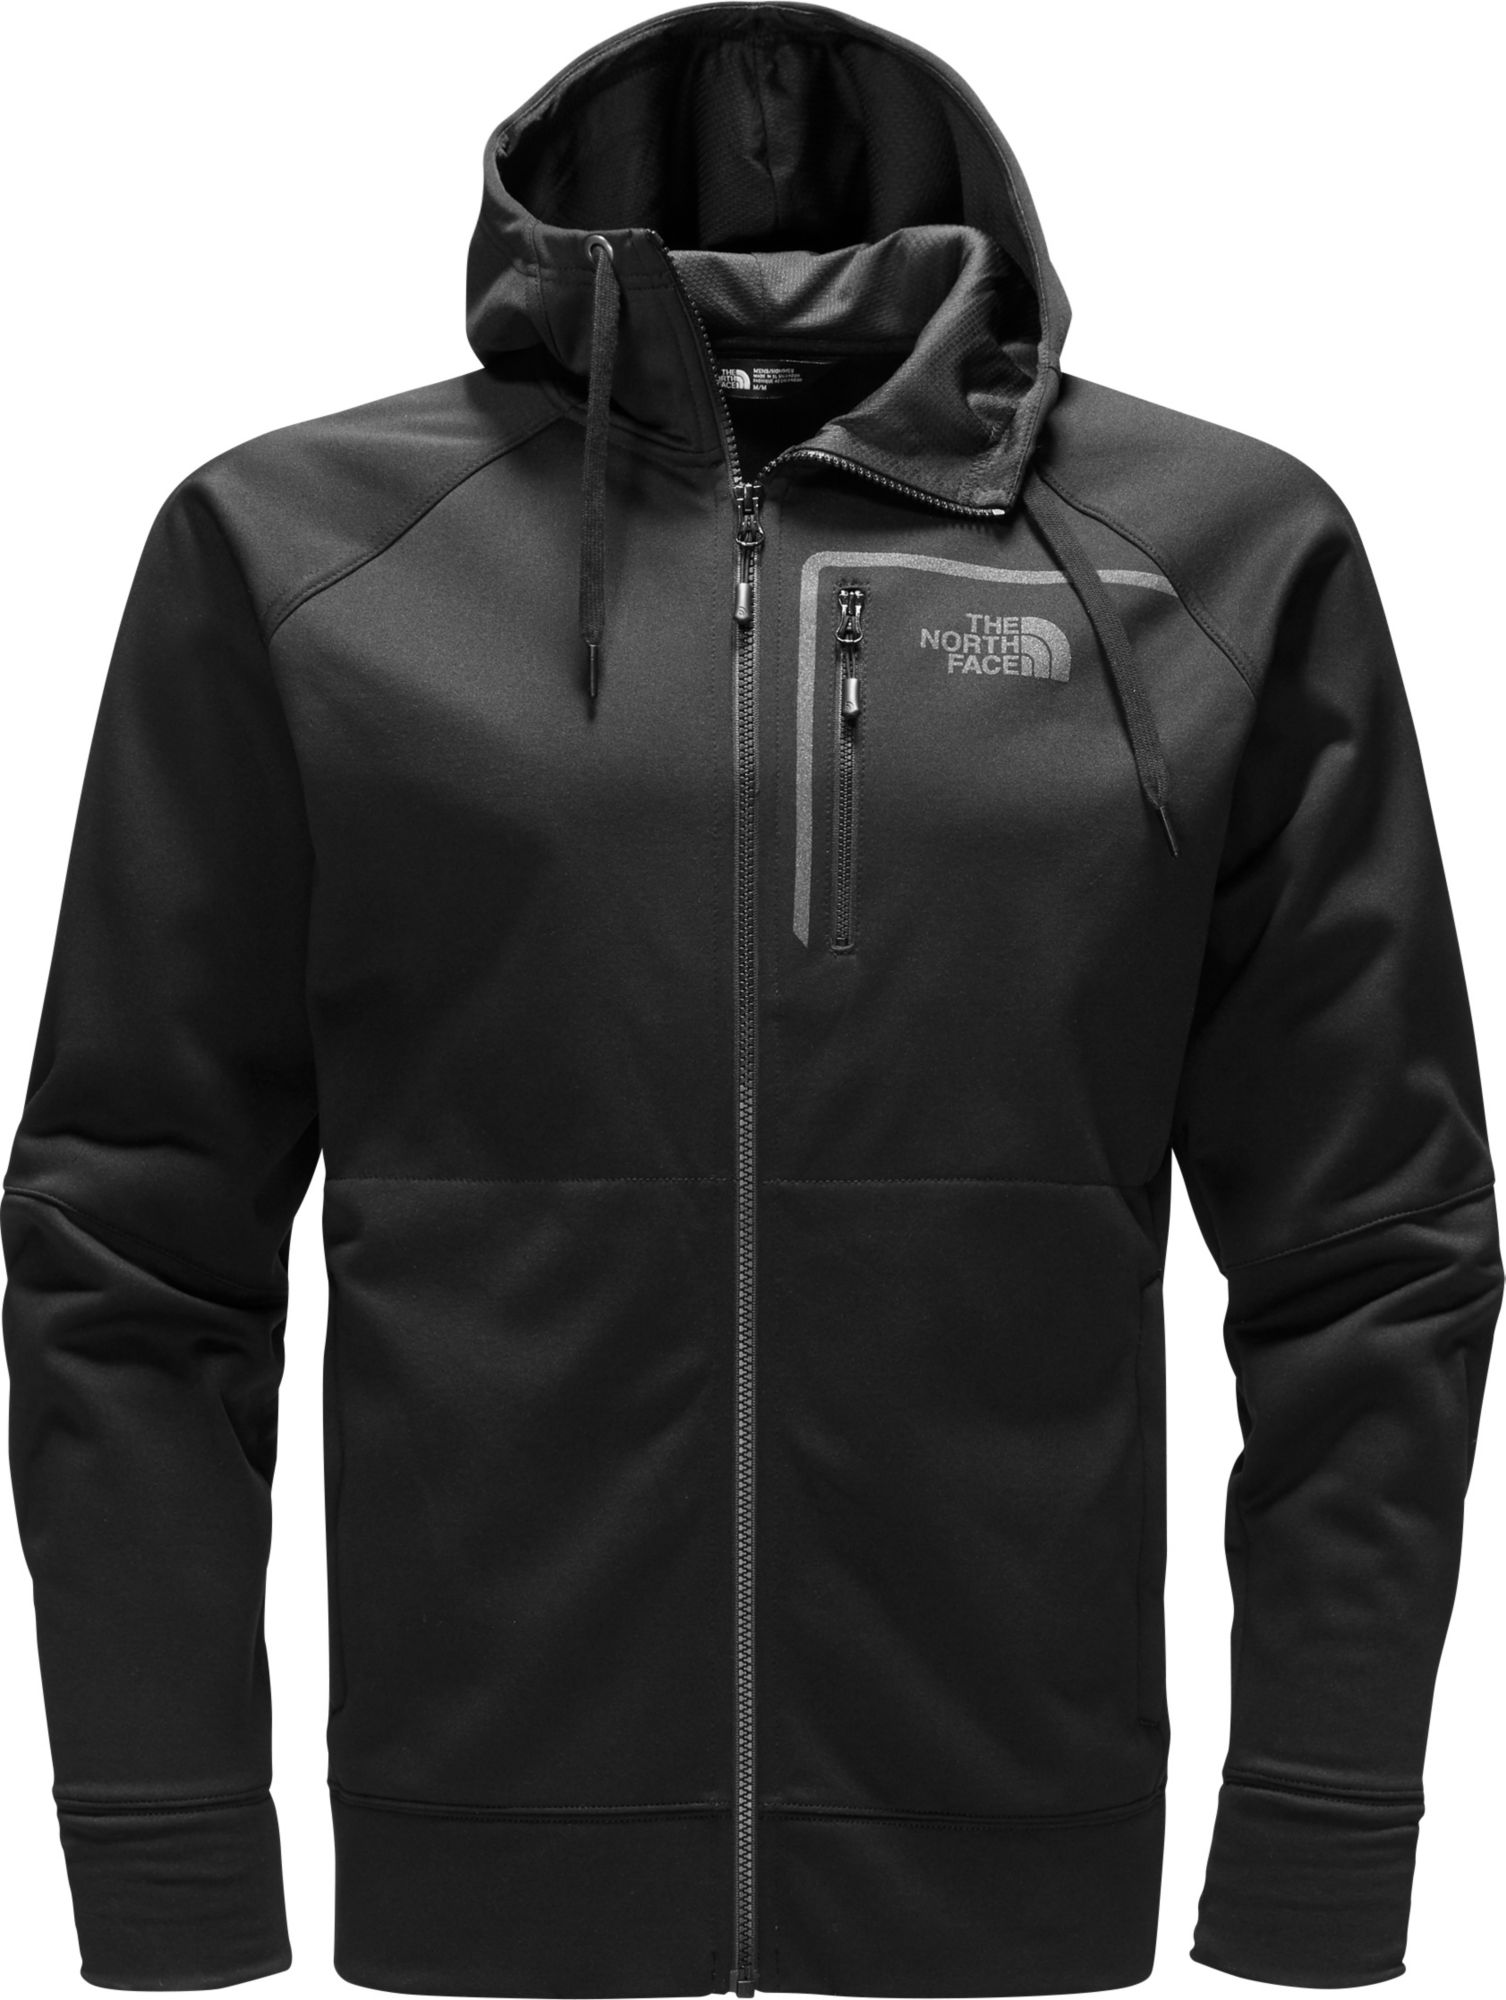 The North Face Men's Jackets & Vests | DICK'S Sporting Goods